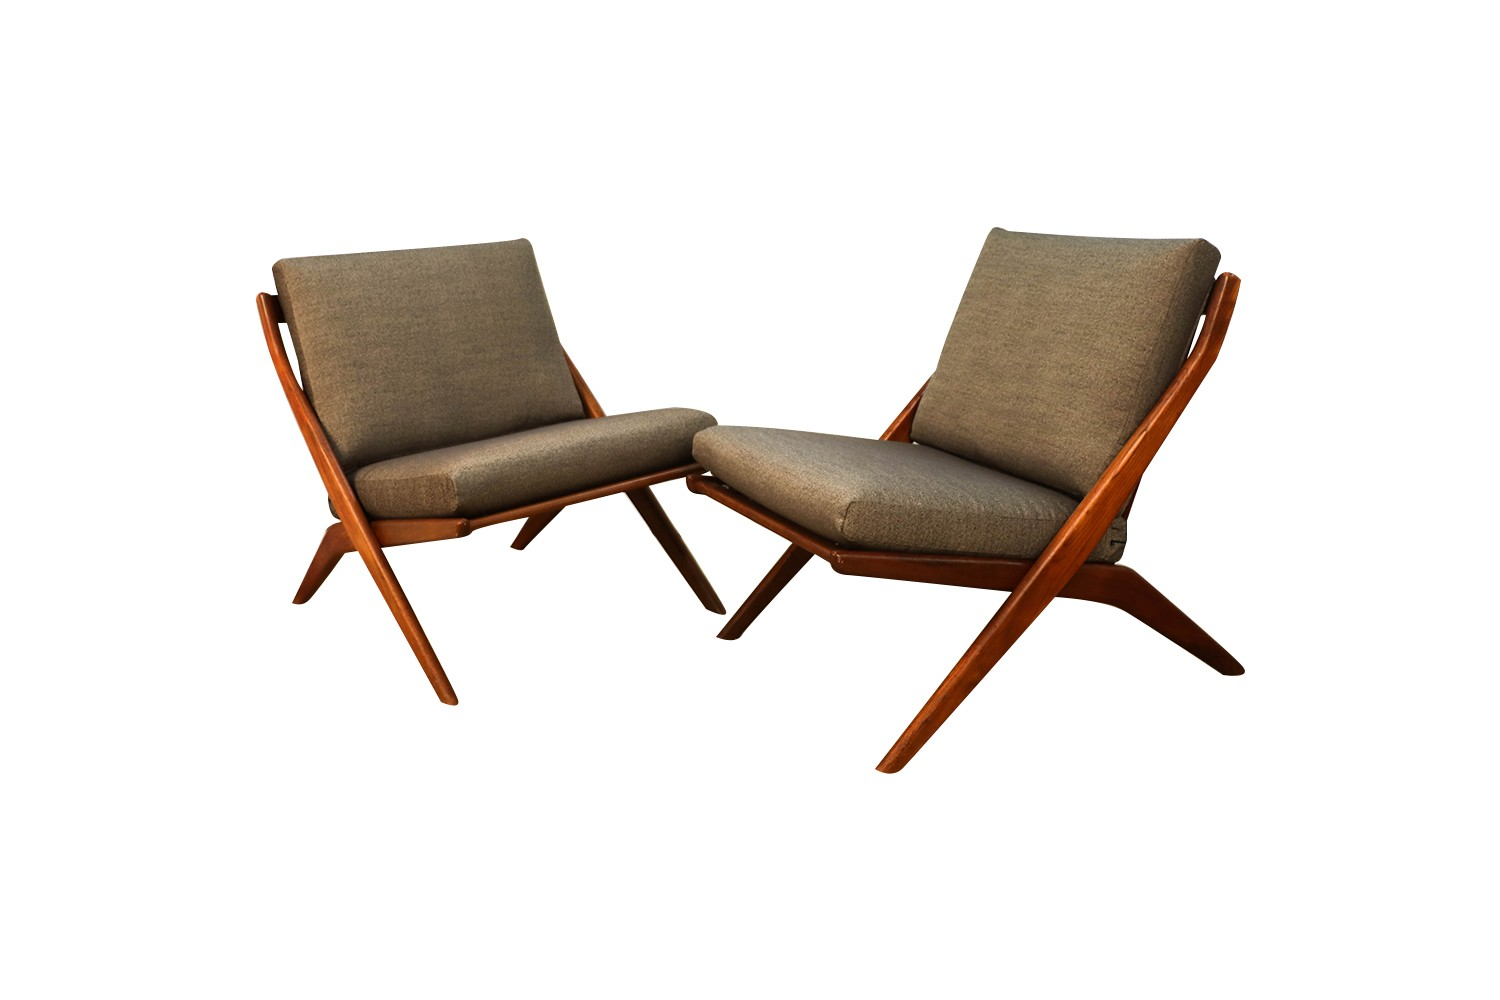 Brilliant Mid Century Modern Folke Ohlsson Dux Scissor Lounge Chairs Pair Gmtry Best Dining Table And Chair Ideas Images Gmtryco